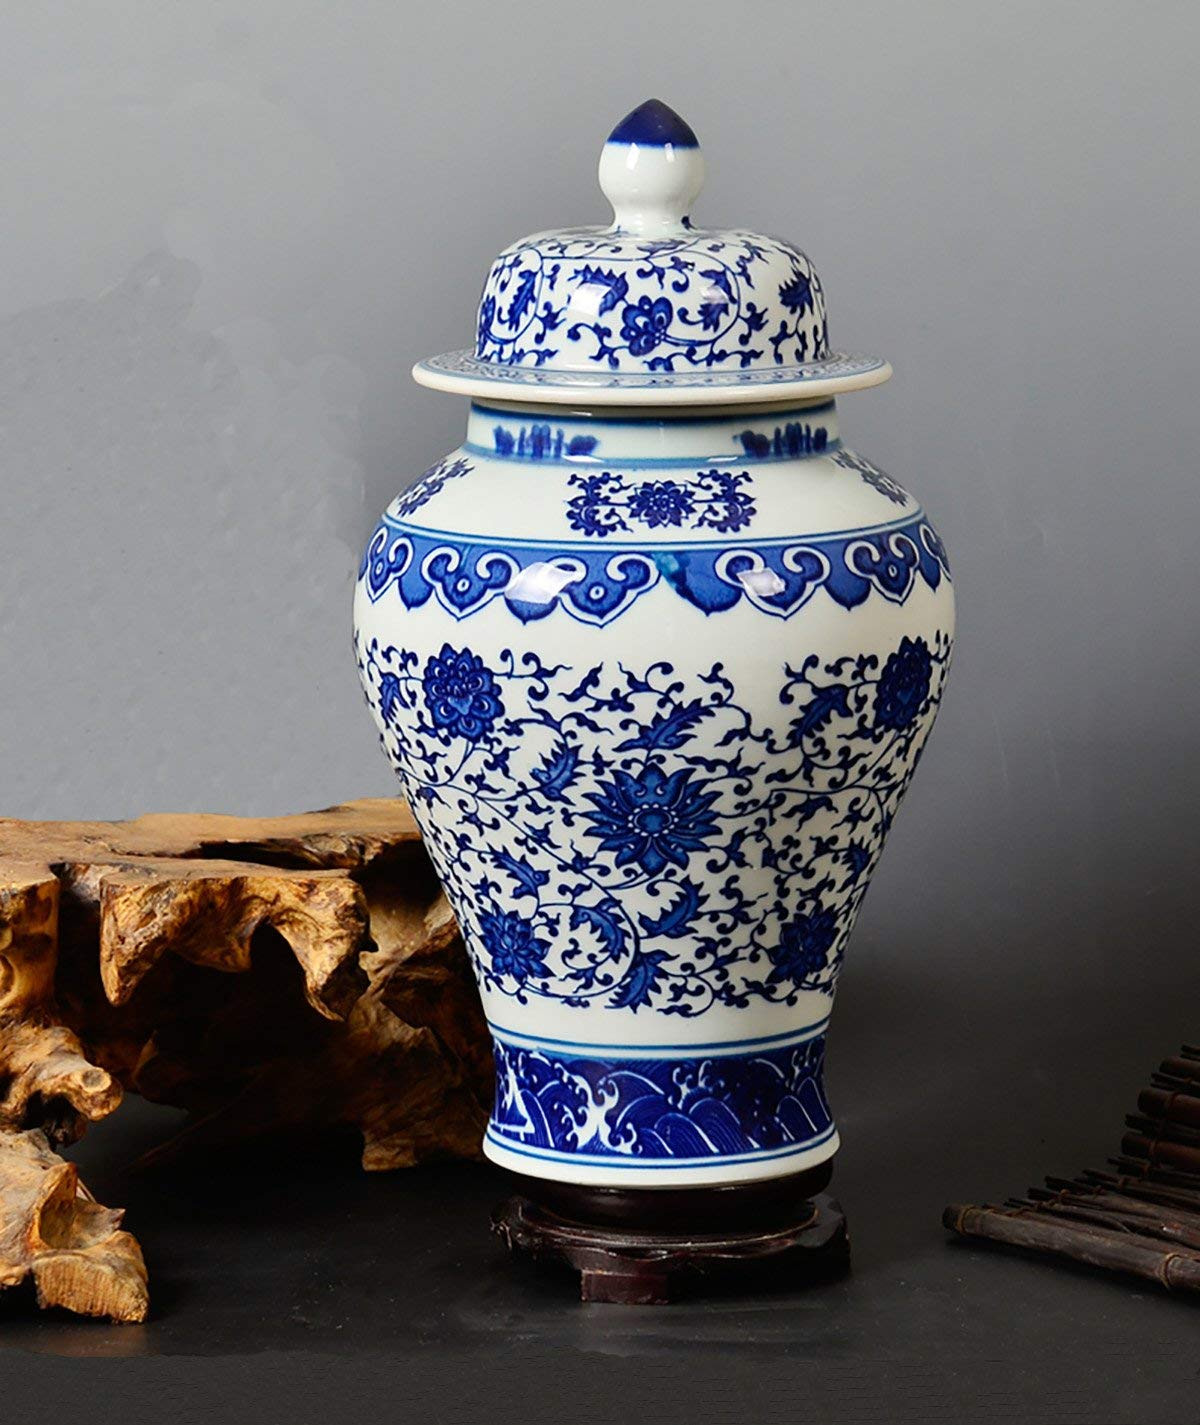 chinese blue porcelain vases of amazon com all decor blue and white ceramic urn fine chinese with regard to amazon com all decor blue and white ceramic urn fine chinese porcelain temple spic